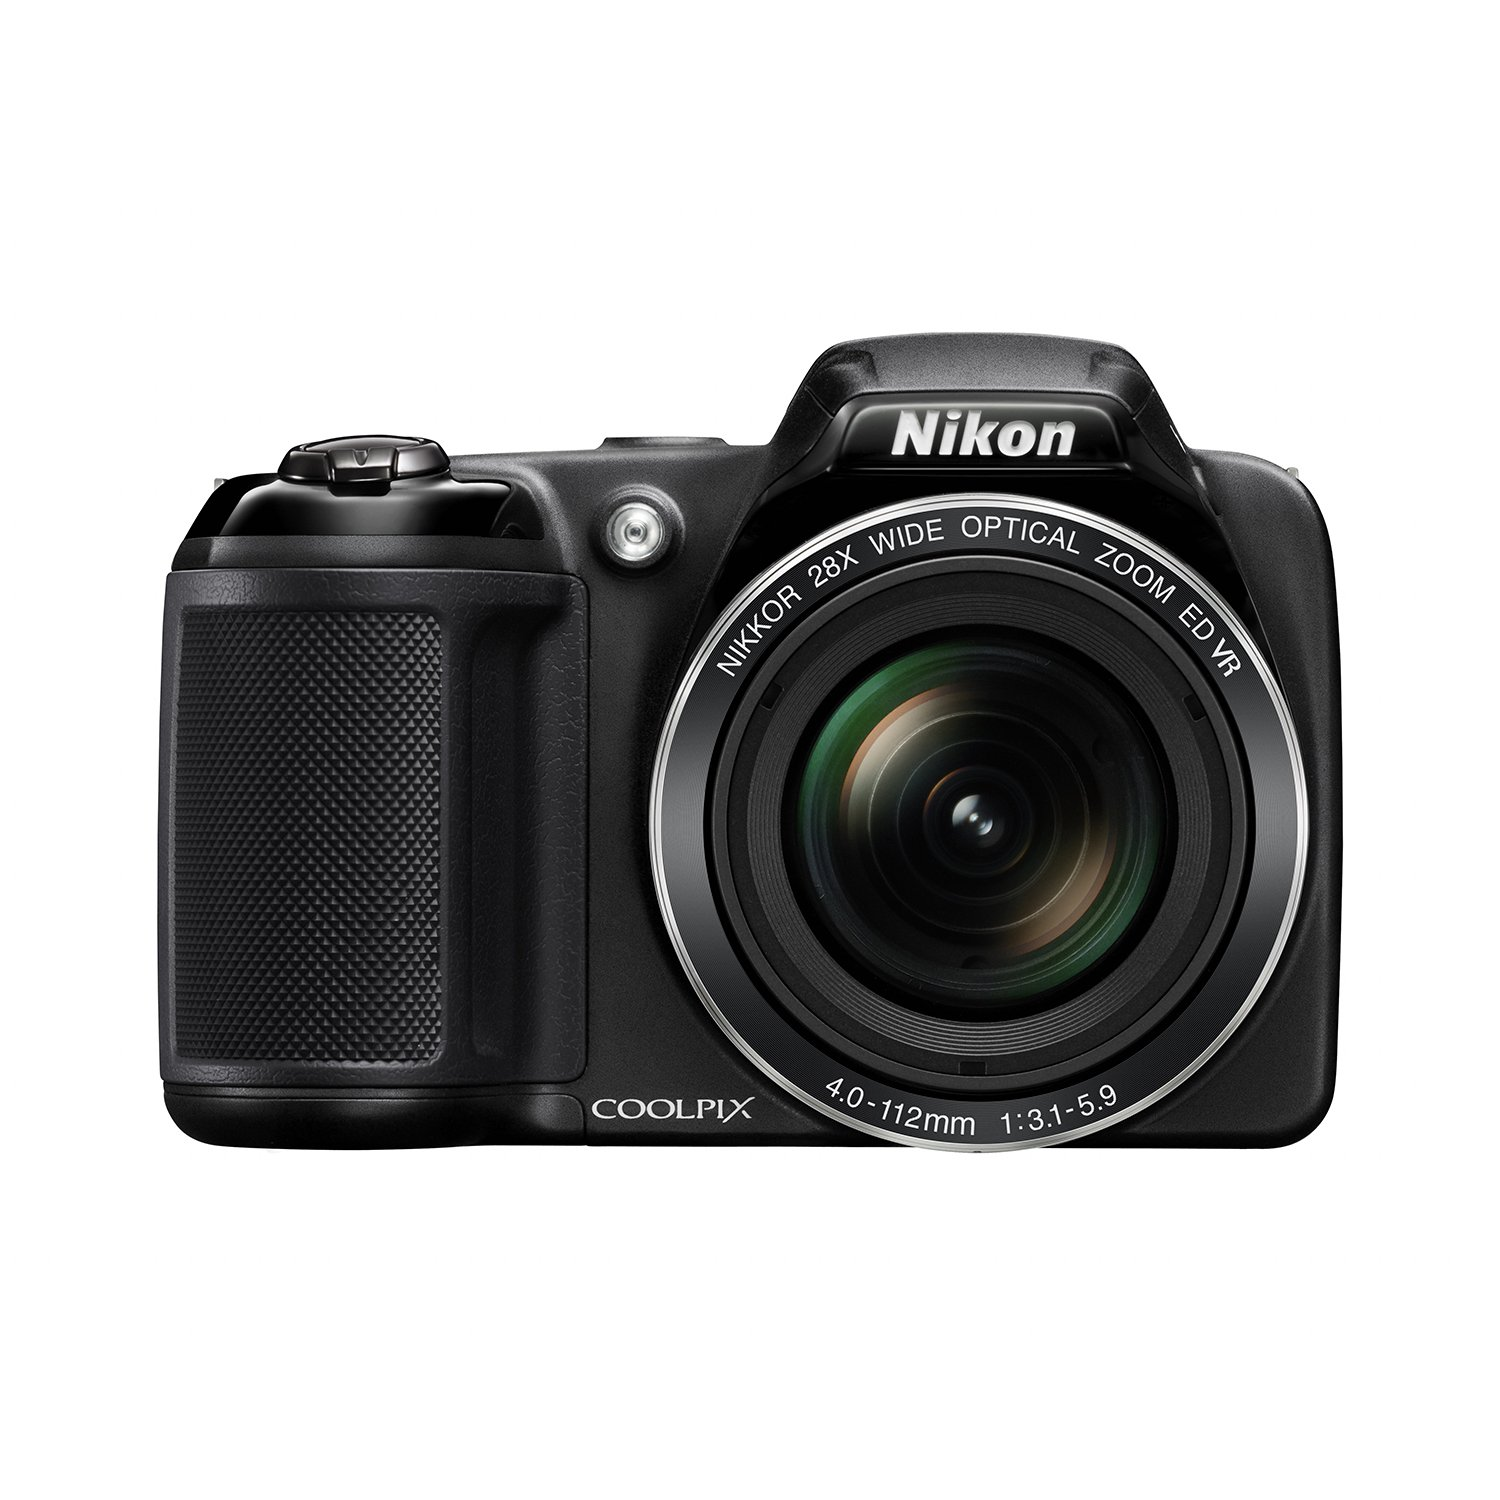 Nikon Coolpix L340 20.2MP Digital Camera with 28x Optical Zoom by Nikon